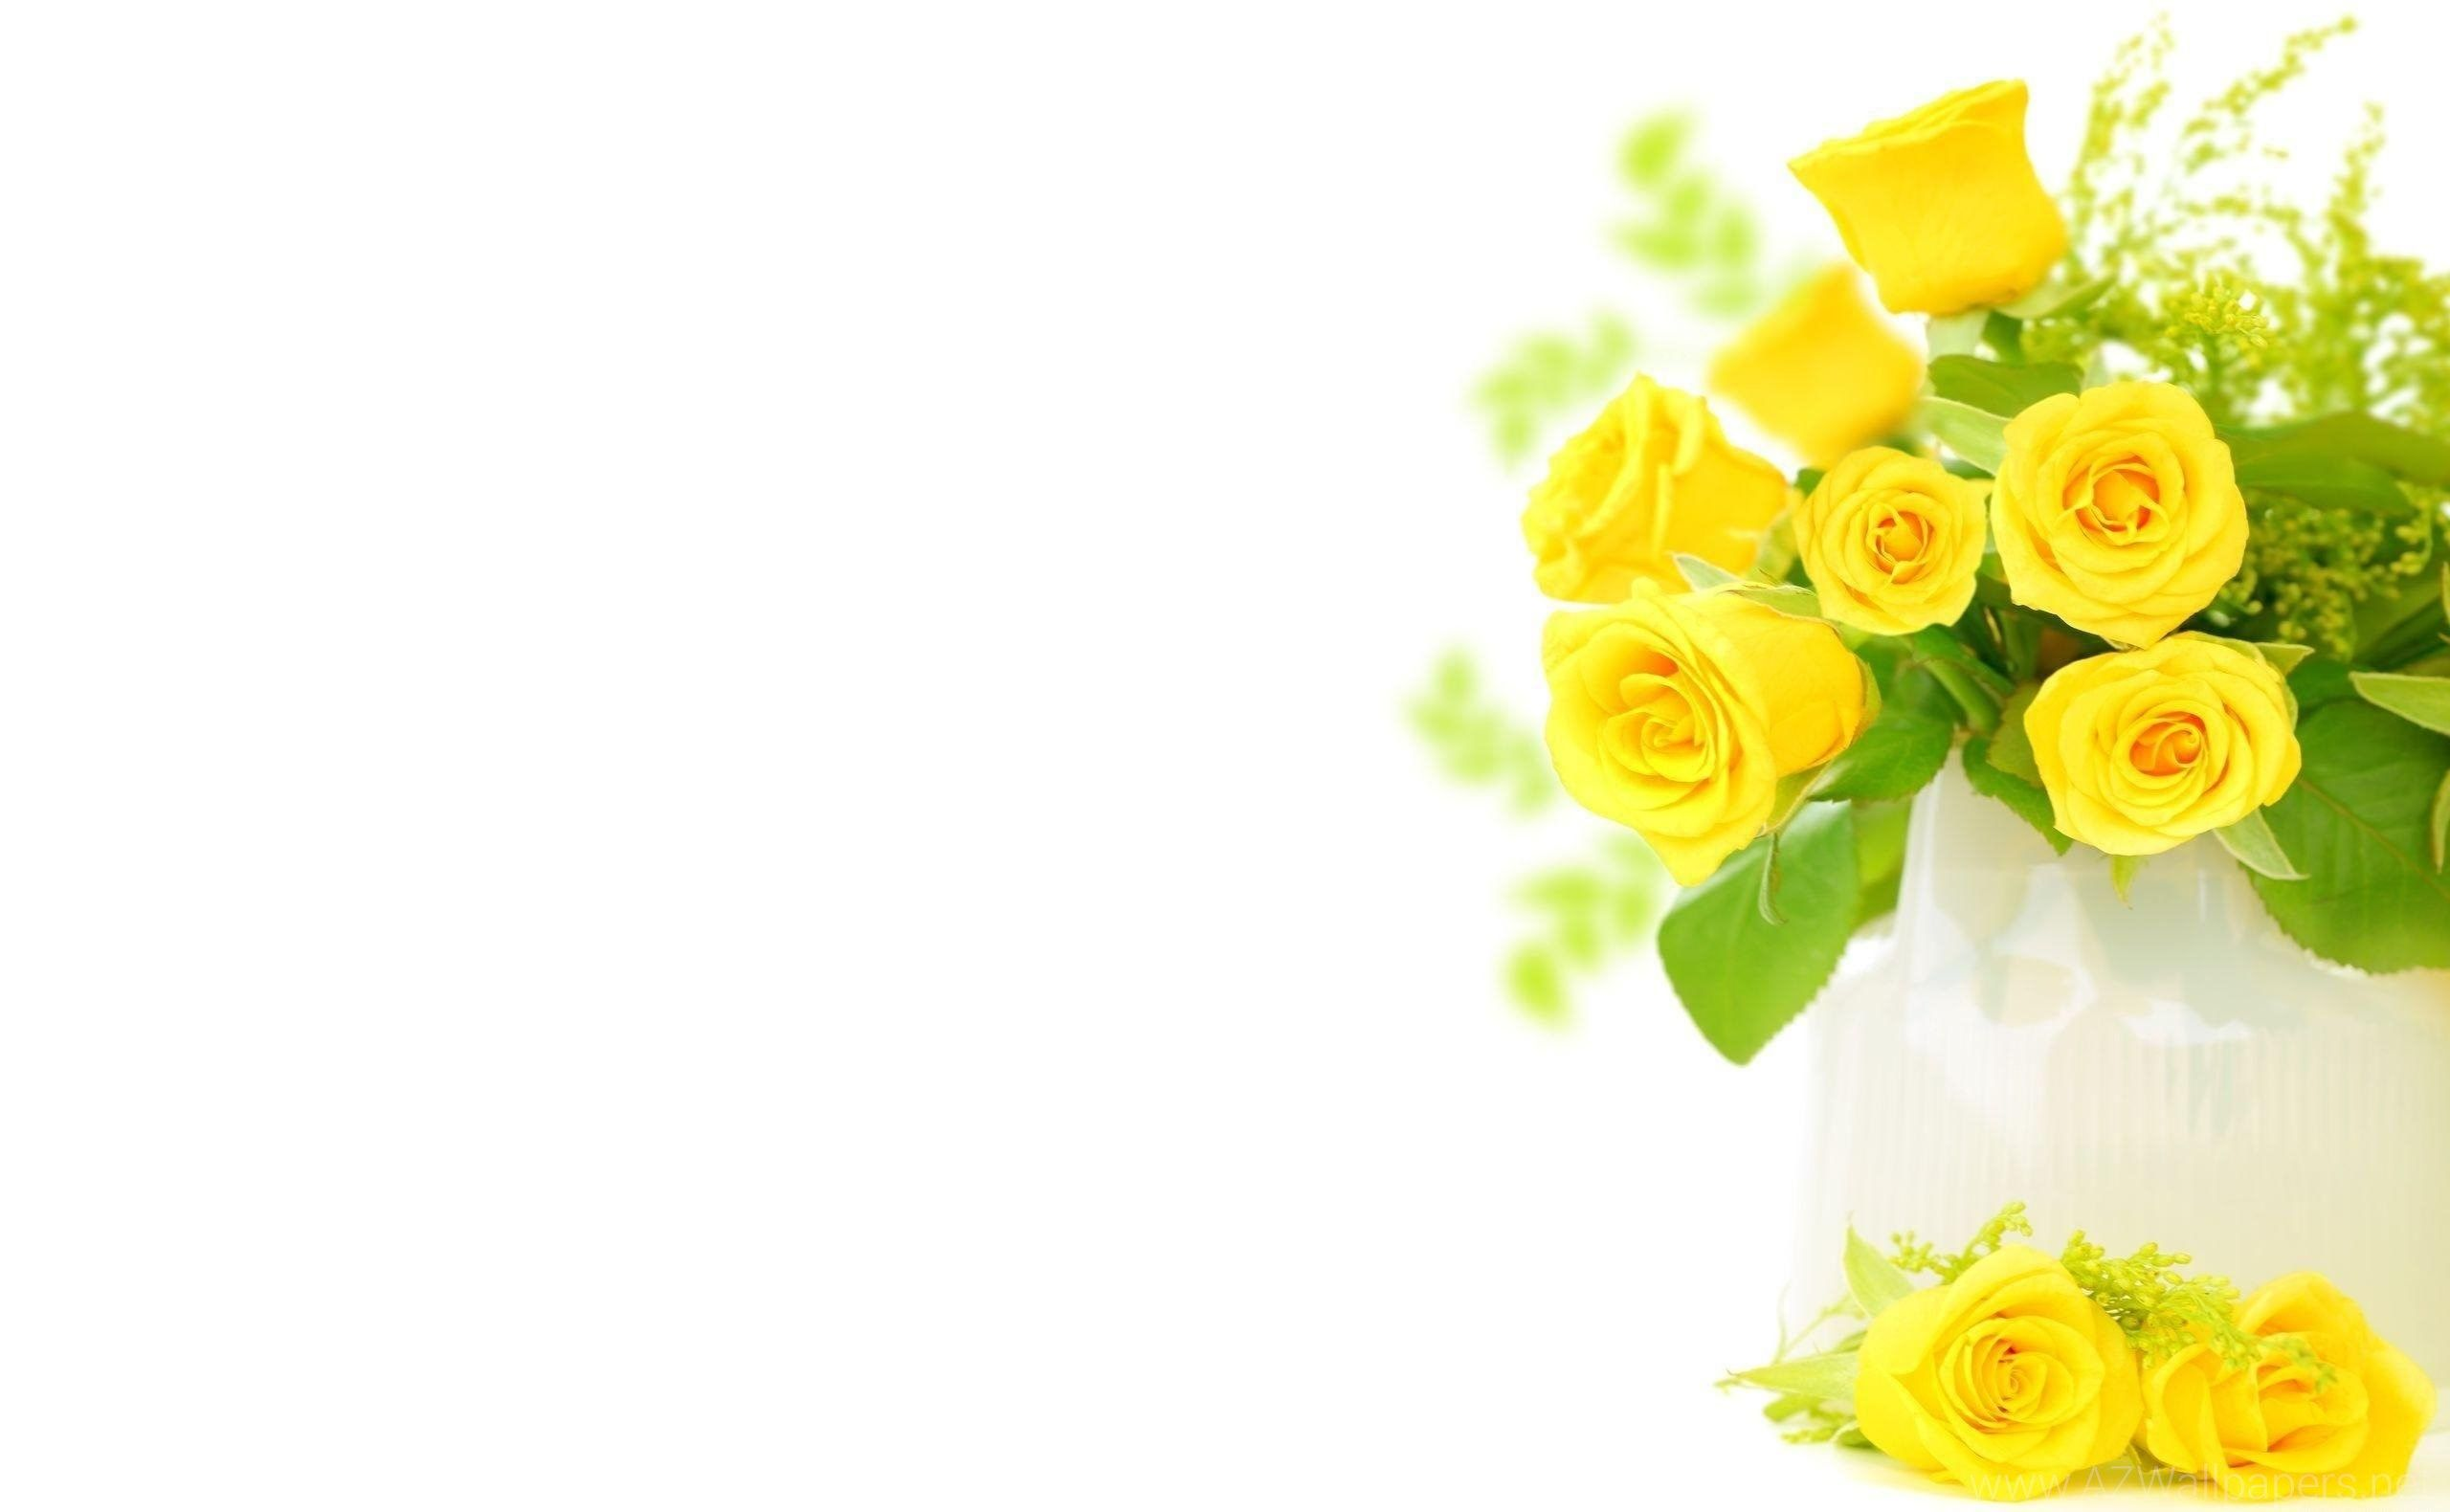 Yellow Roses Background Wallpaper HD Wallpapers